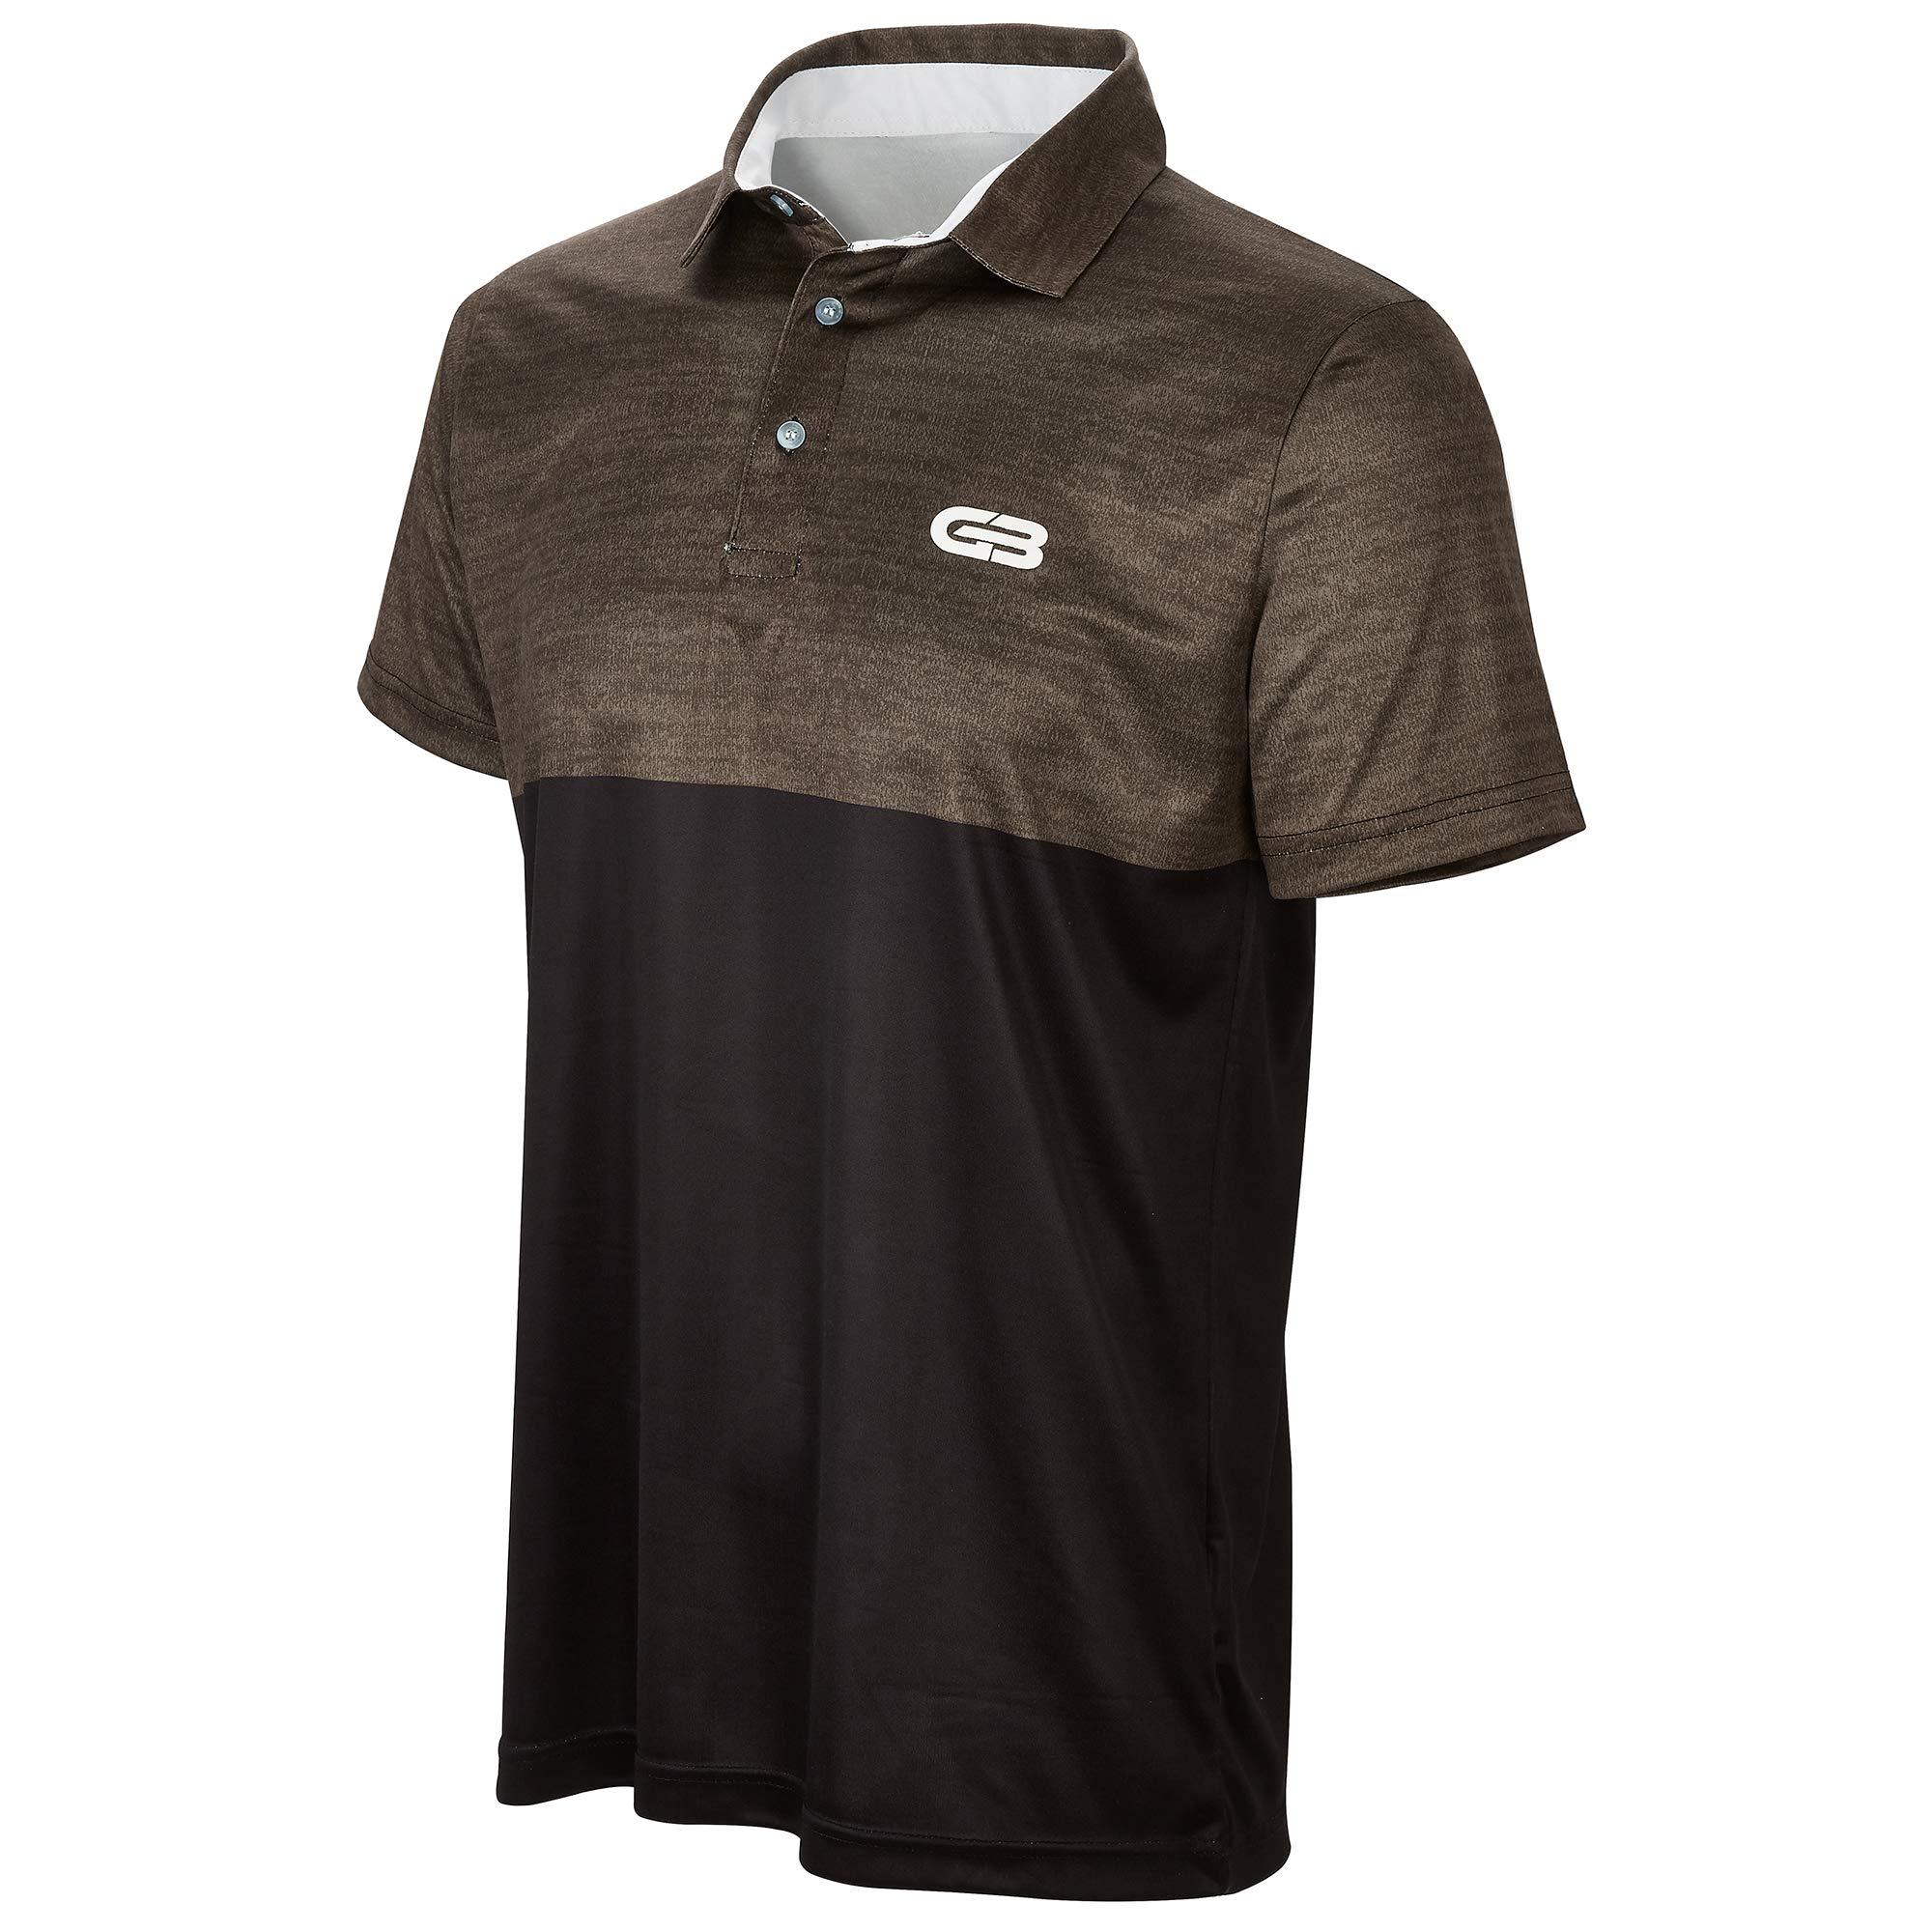 b8c3d957 Best Rated in Men's Golf Shirts & Helpful Customer Reviews - Amazon.com